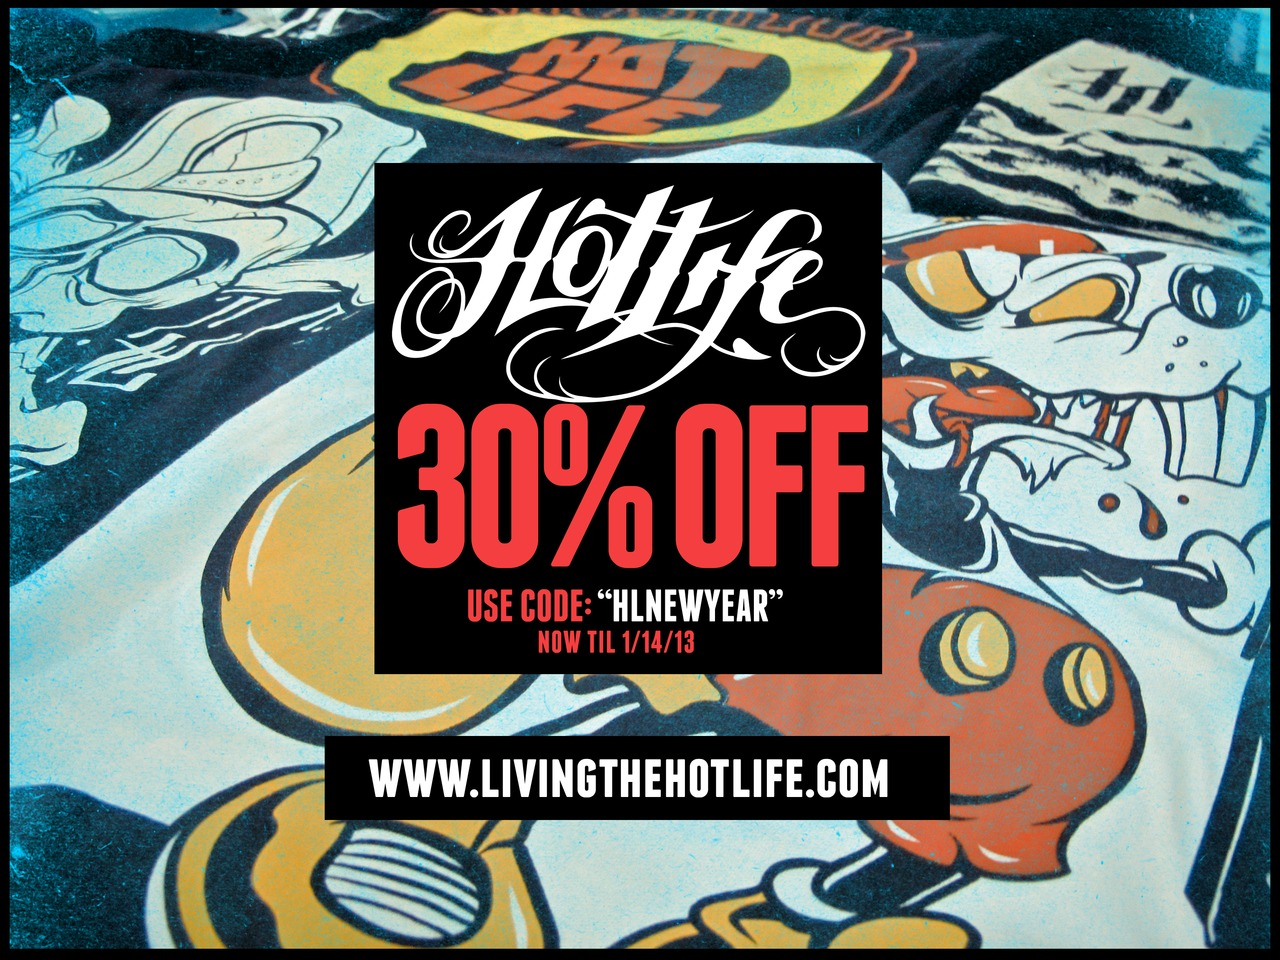 "We are designing the new upcoming HL line and need to make room. Grab some killer HOTLIFE gear for super cheap. Use code ""HLNEWYEAR"" for 30%OFF ALL SNAPBACKS /SHIRTS/HOODS and more."